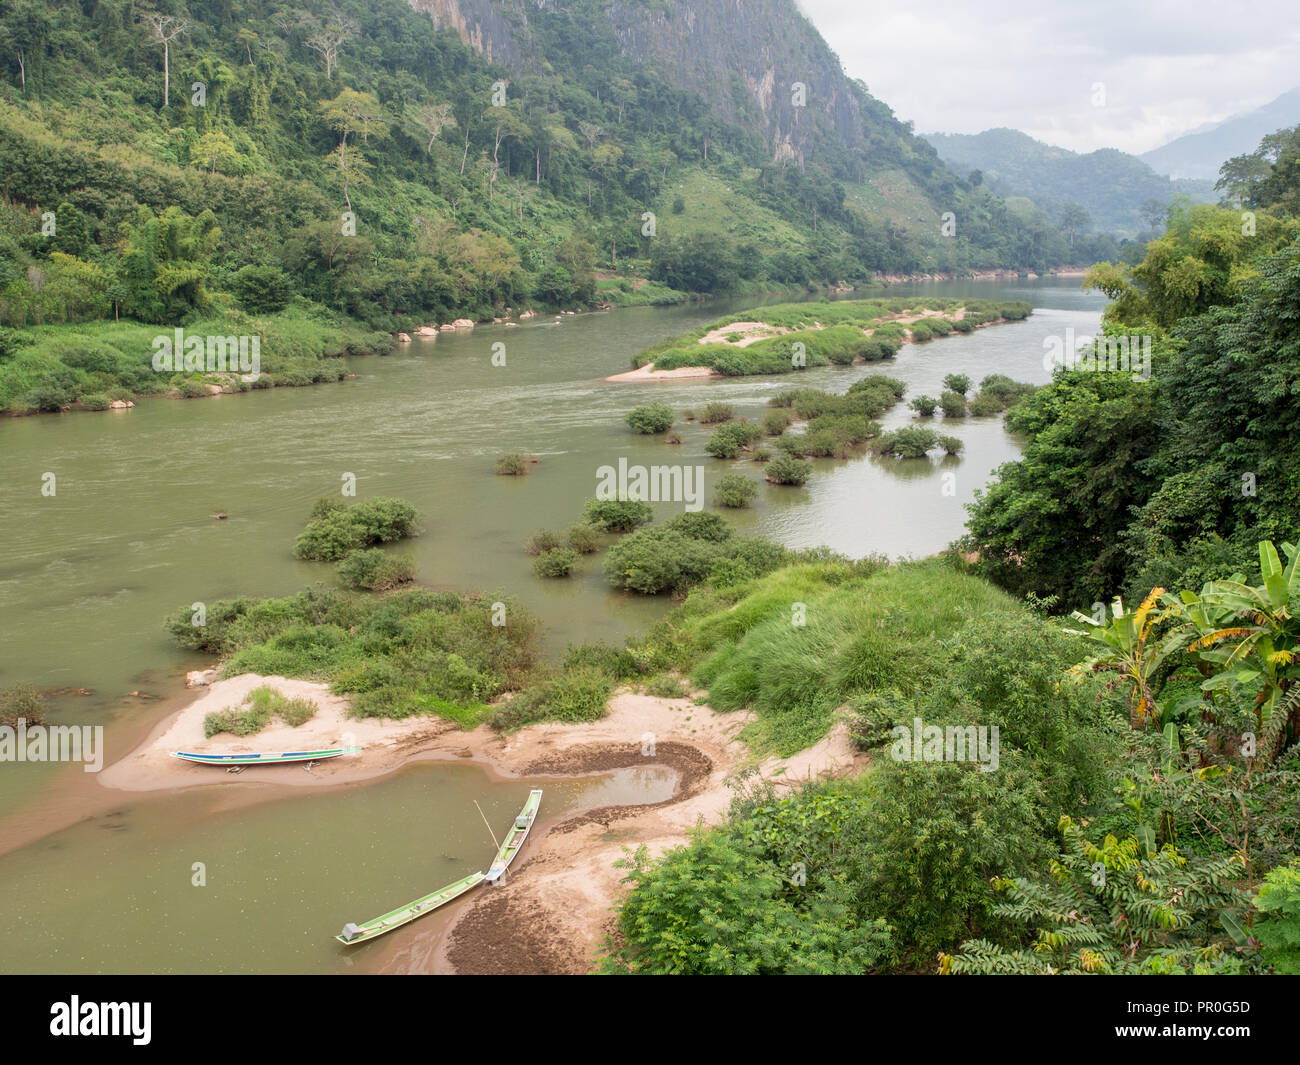 Nam Ou River, Nong Khiaw, Laos, Indochina, Southeast Asia, Asia - Stock Image